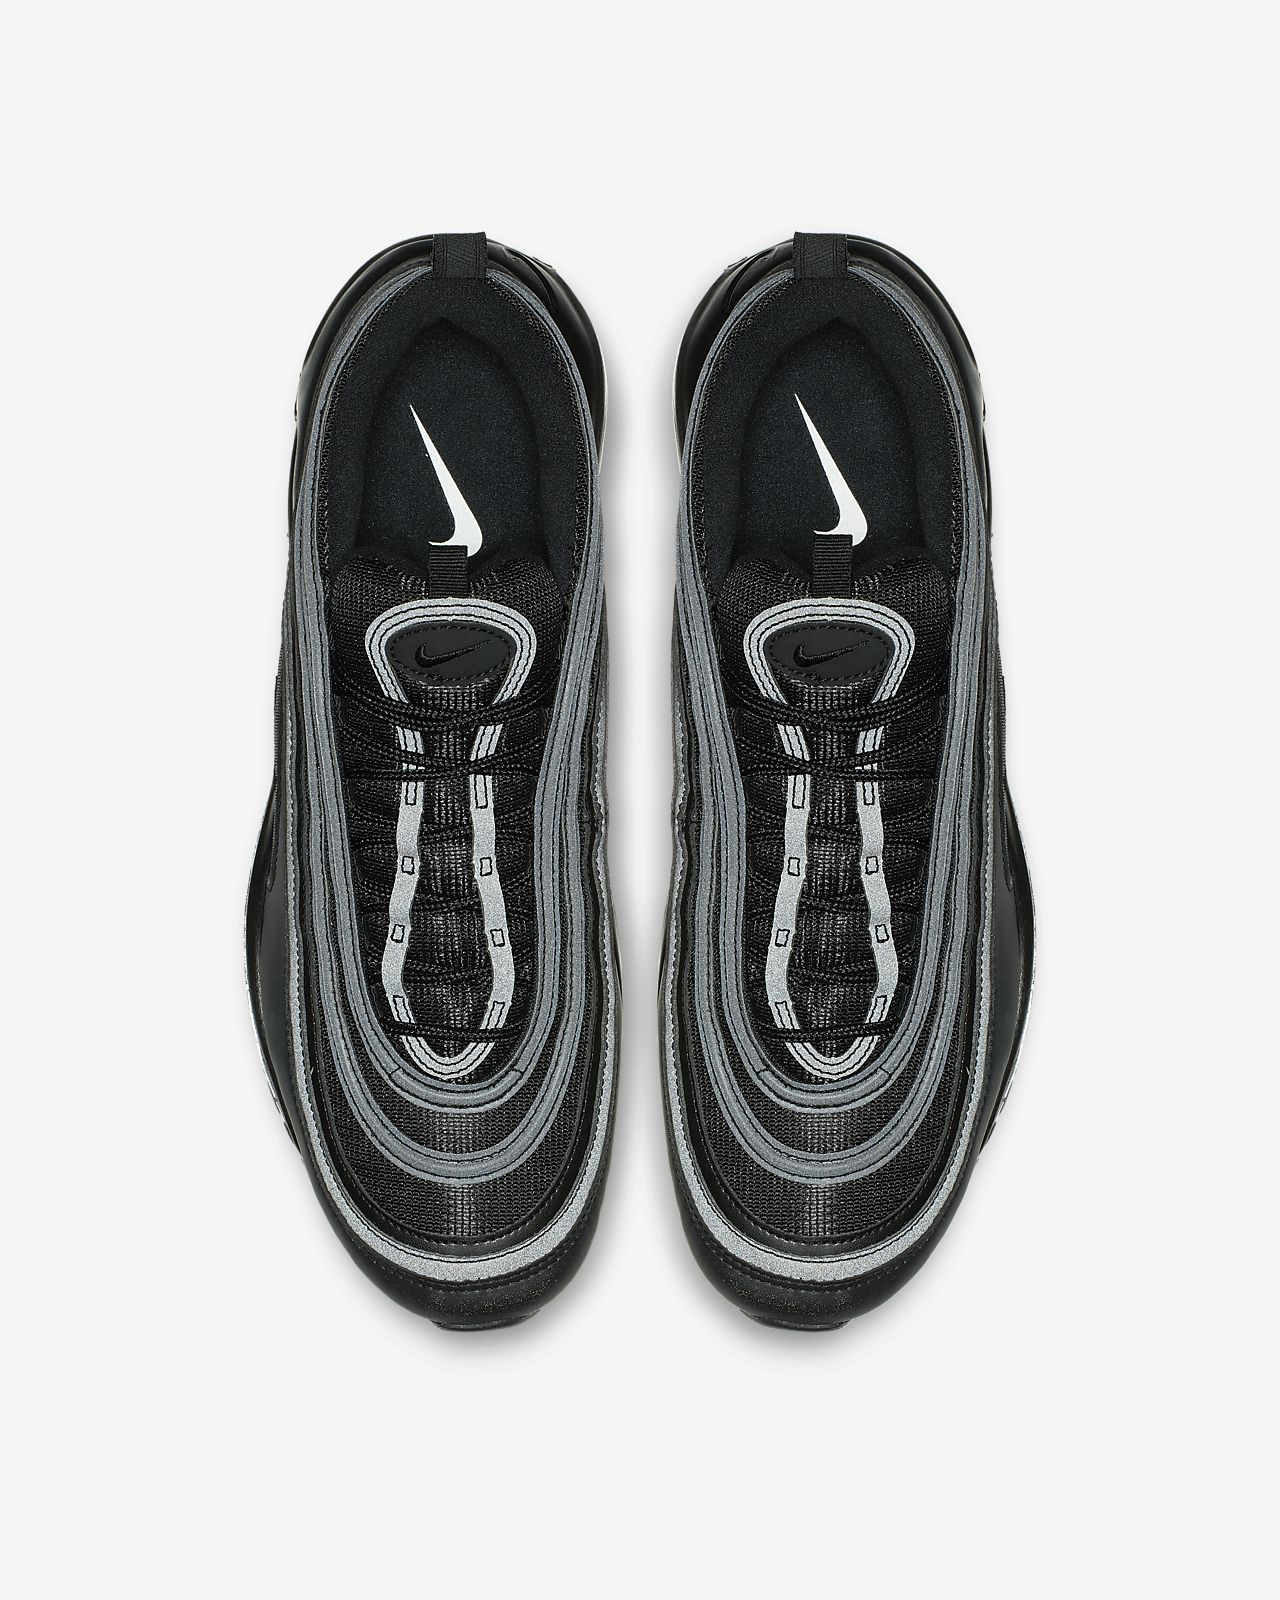 quality design 0704d 250f6 ... Chaussure Nike Air Max 97 pour Homme